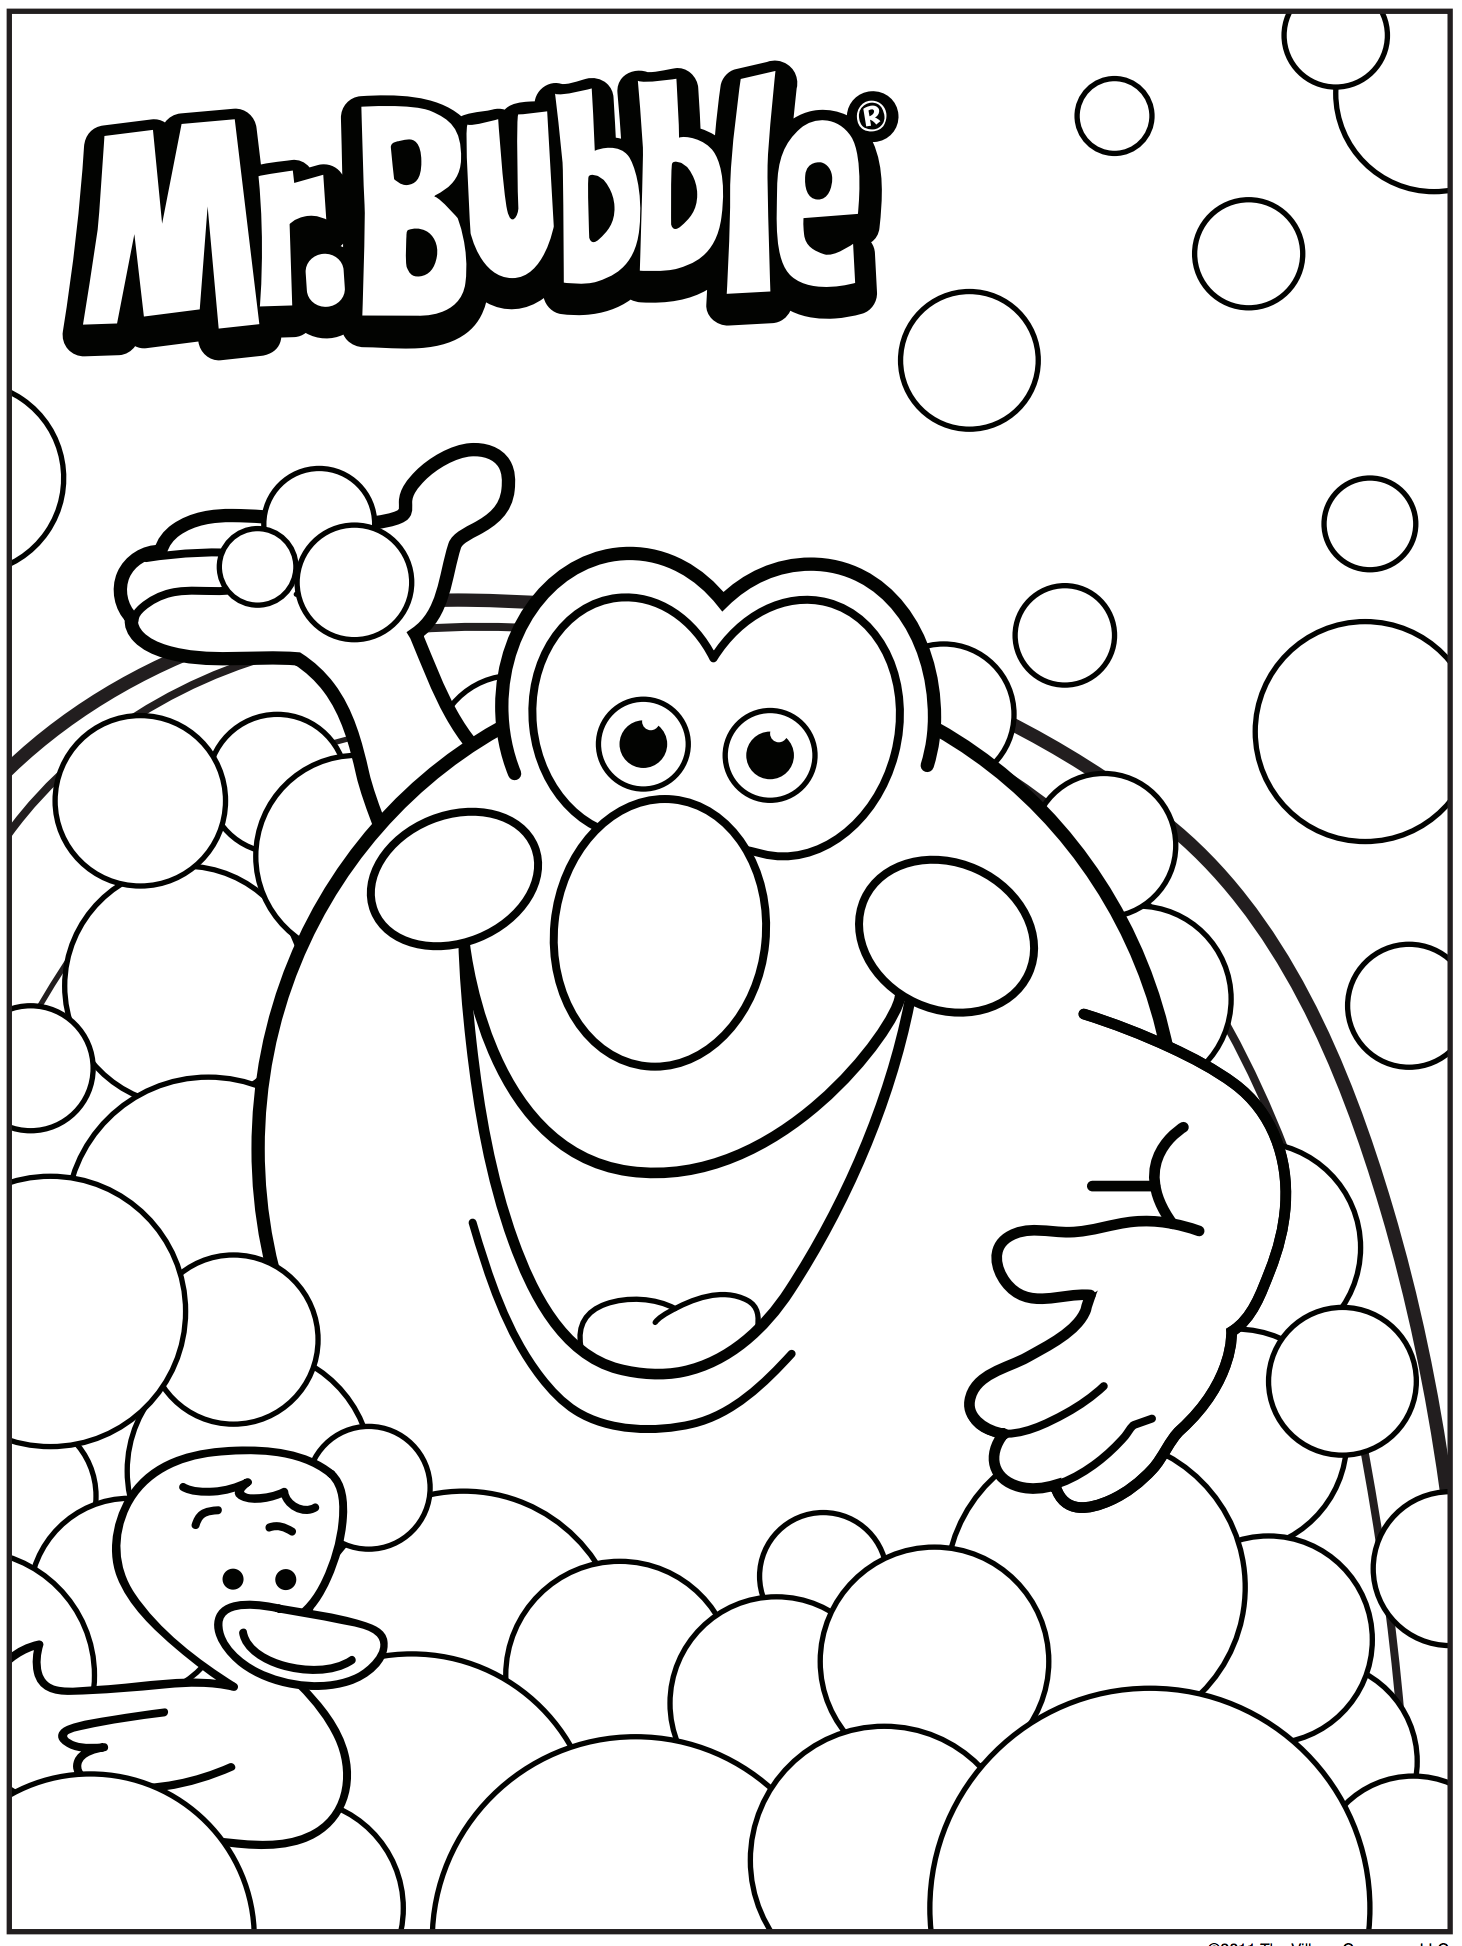 Fun Coloring Pages For 3rd Graders Az Coloring Pages Coloring Pages For 3rd Graders